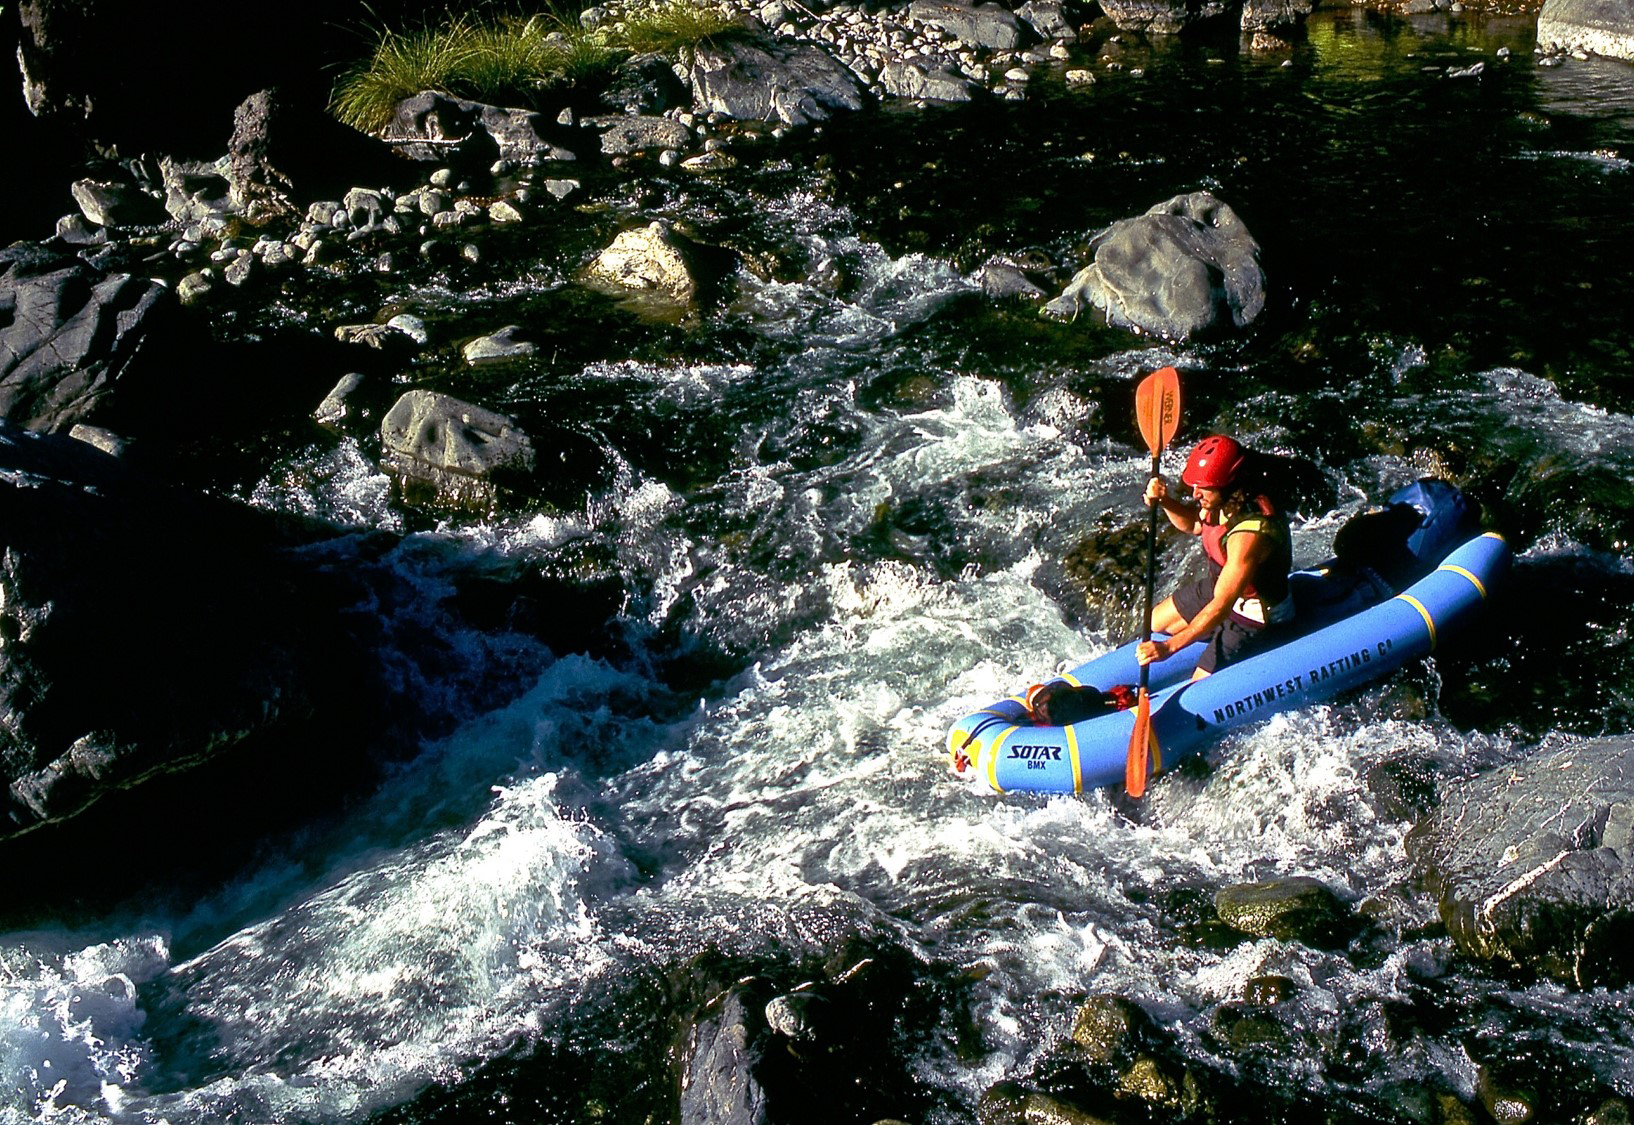 A photo of a kayaker on the Chetco River - Rogue River-Siskiyou National Forest.